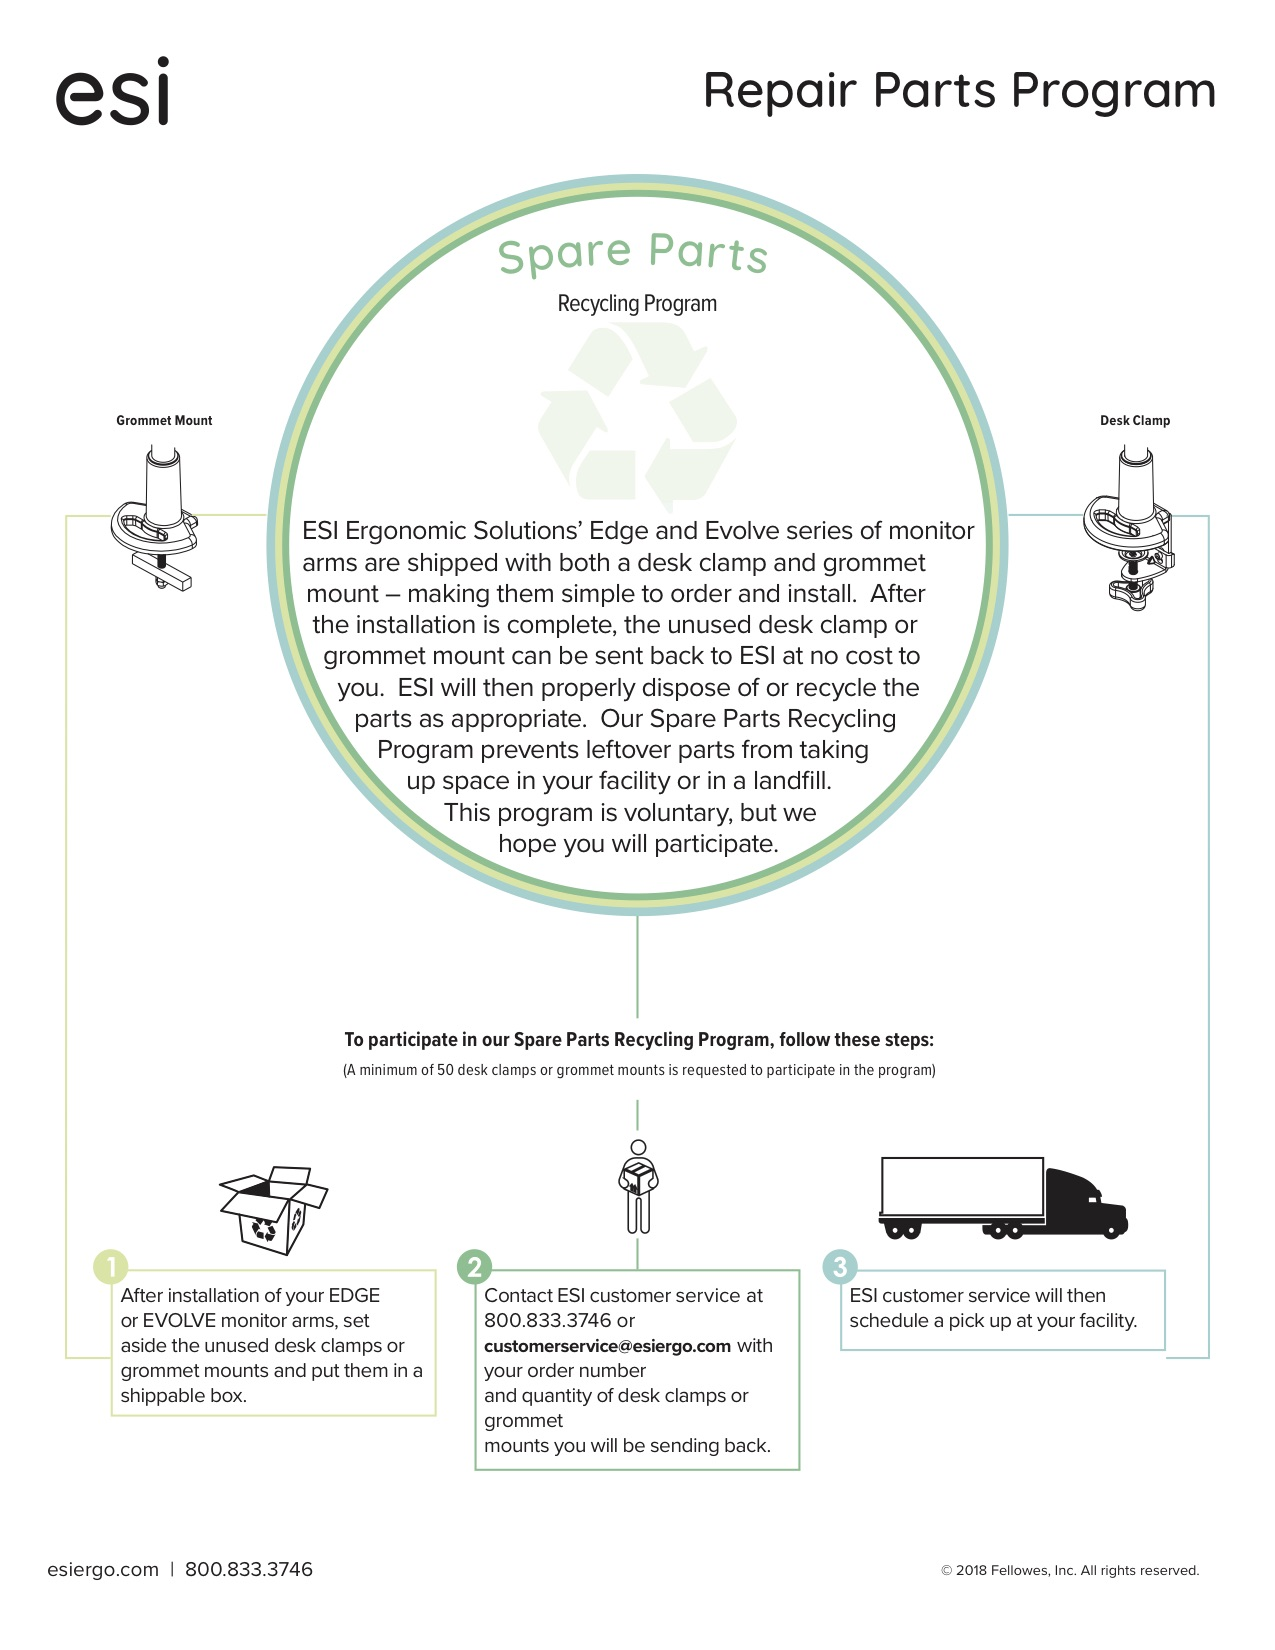 Spare Parts Recycling Program